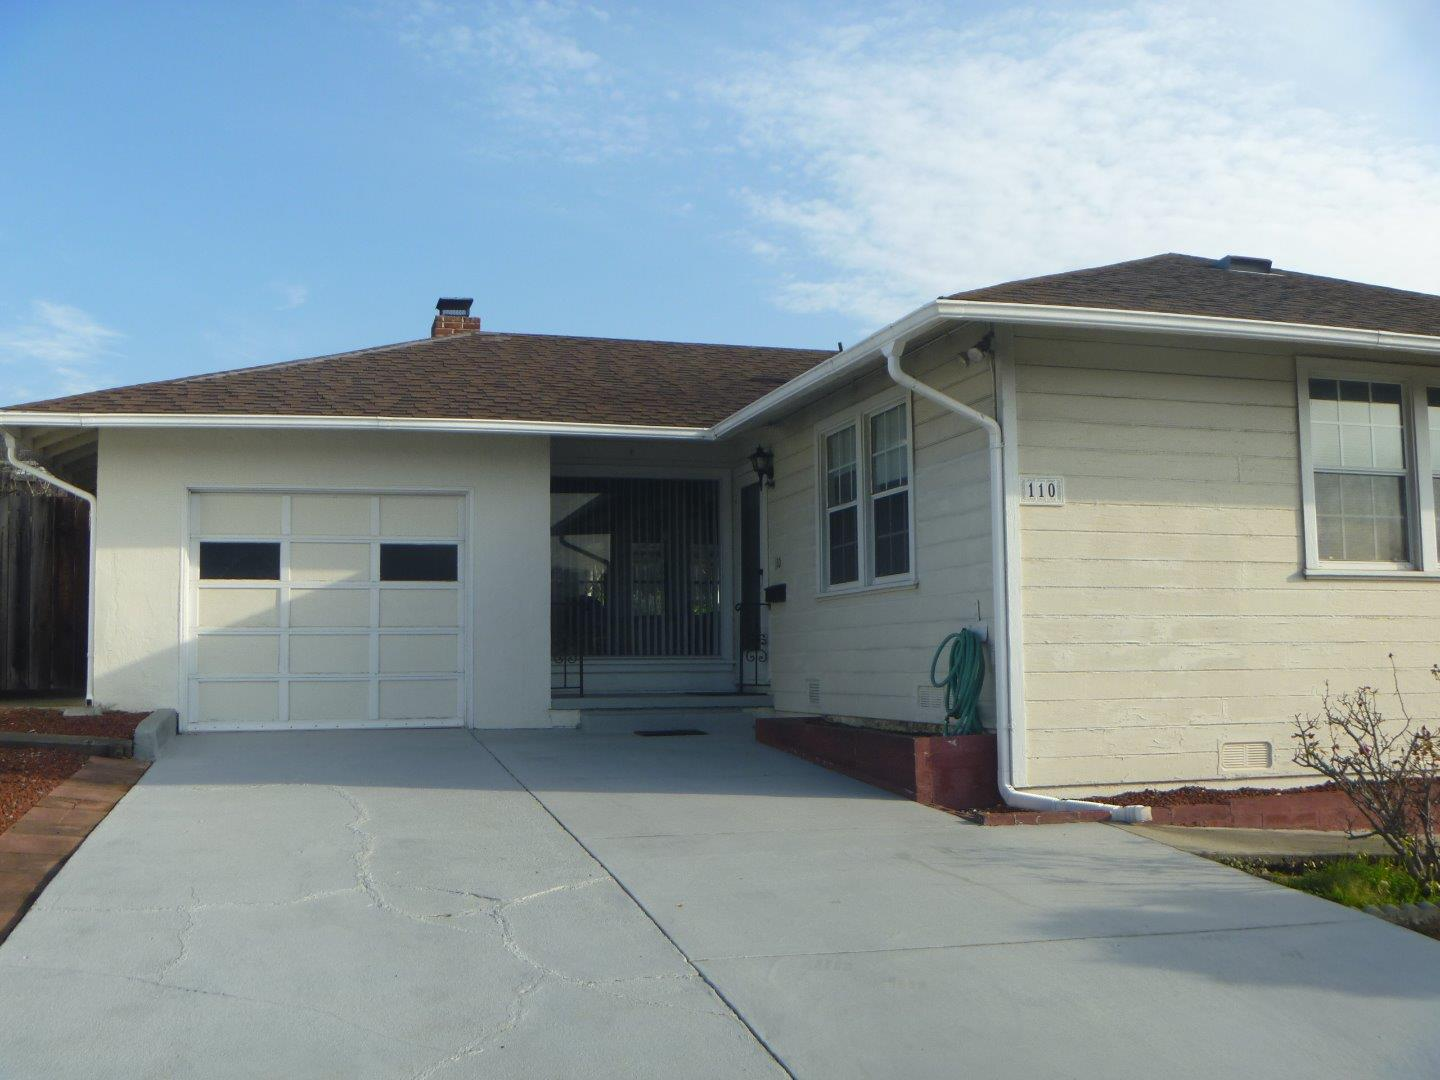 110 Del Monte Ave, South San Francisco, CA